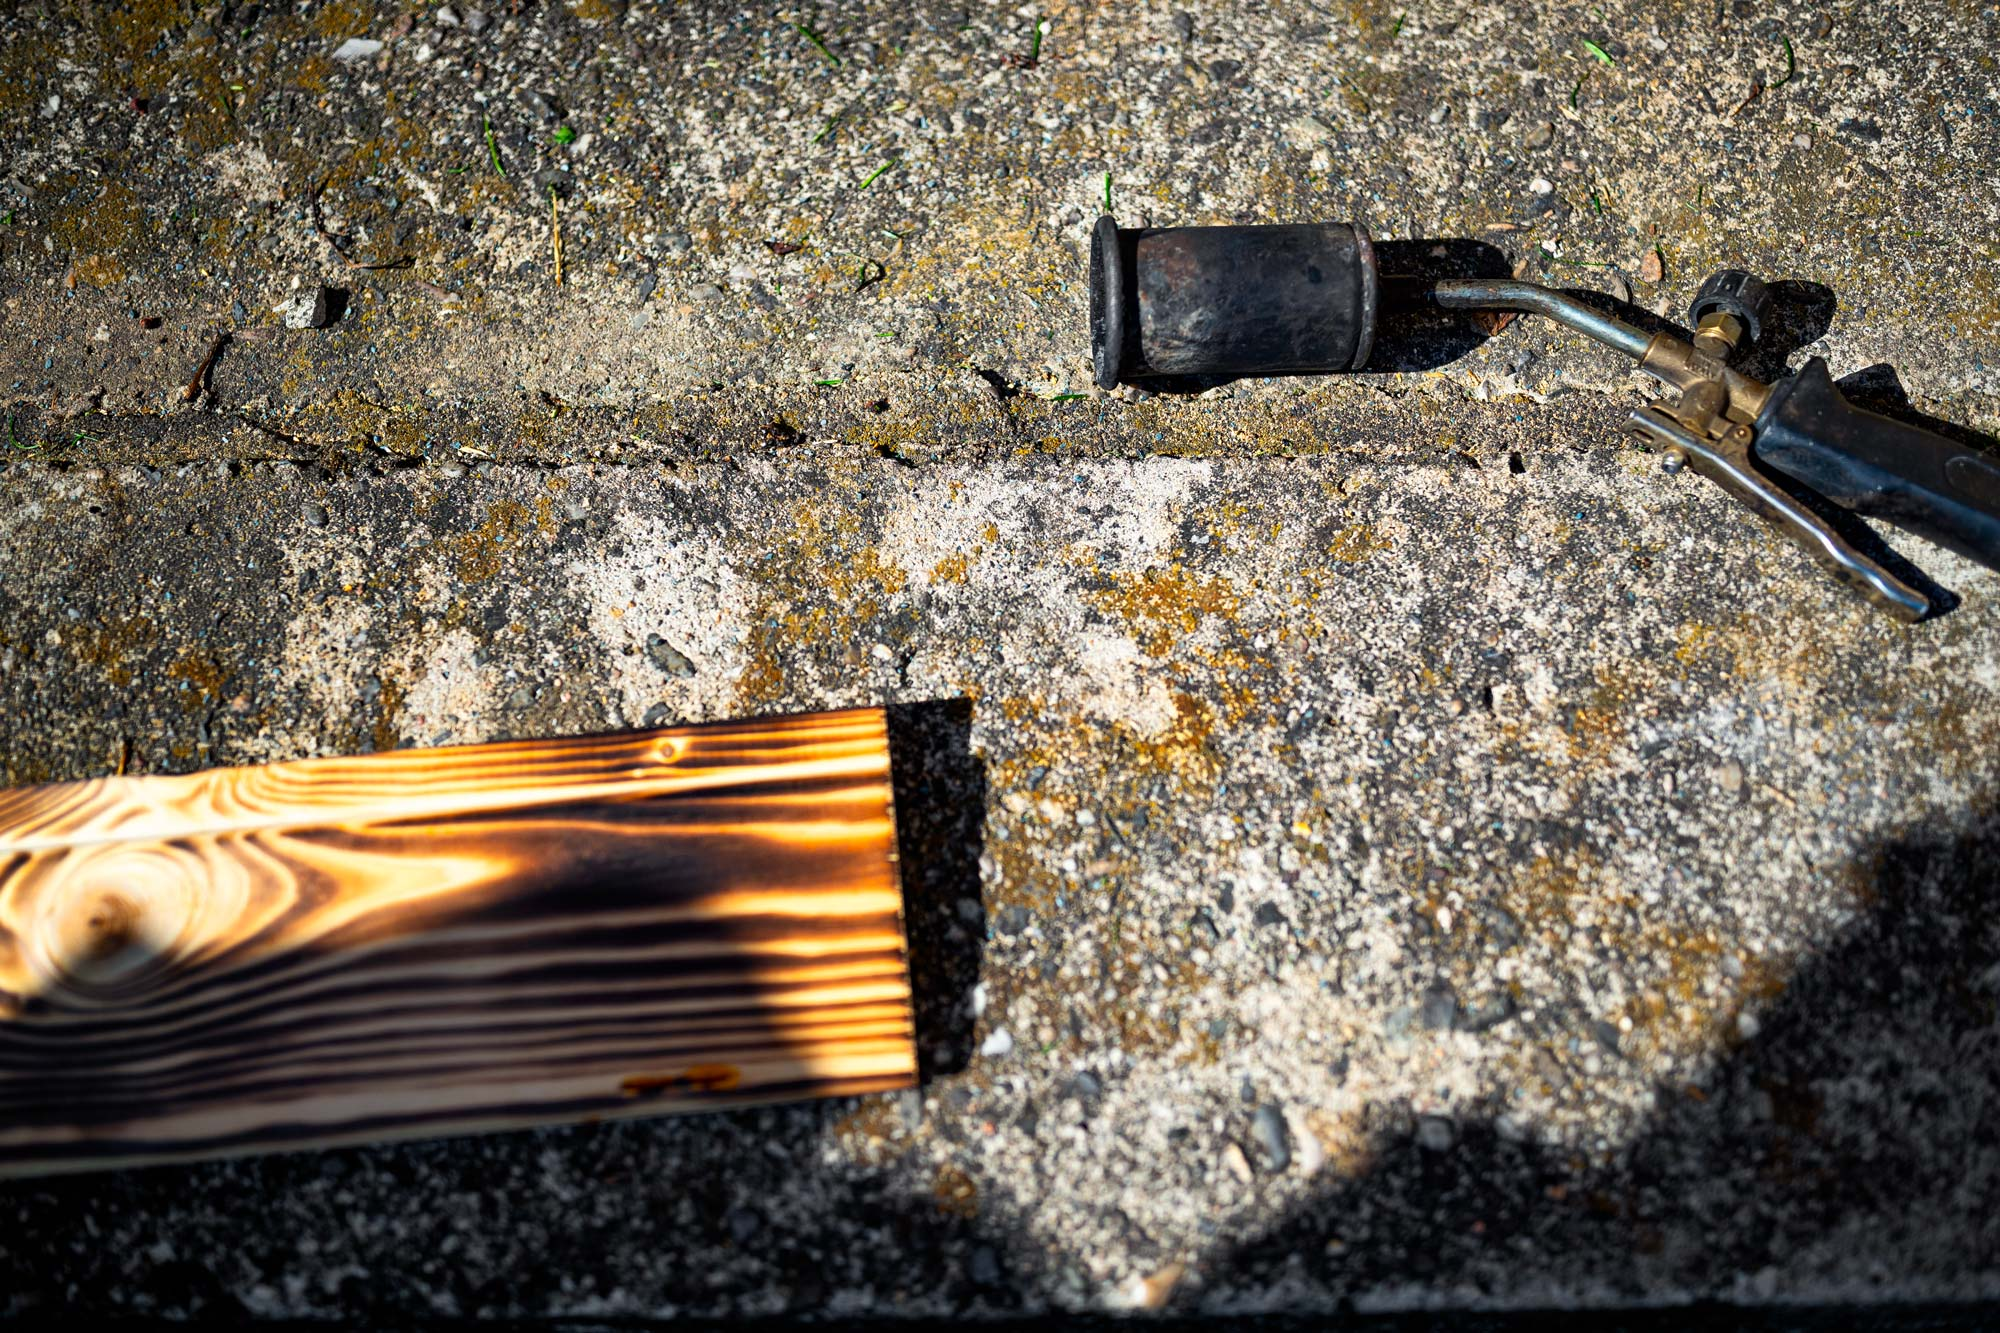 Building photographic backgrounds. A blow torch burning next to a wooden desk.